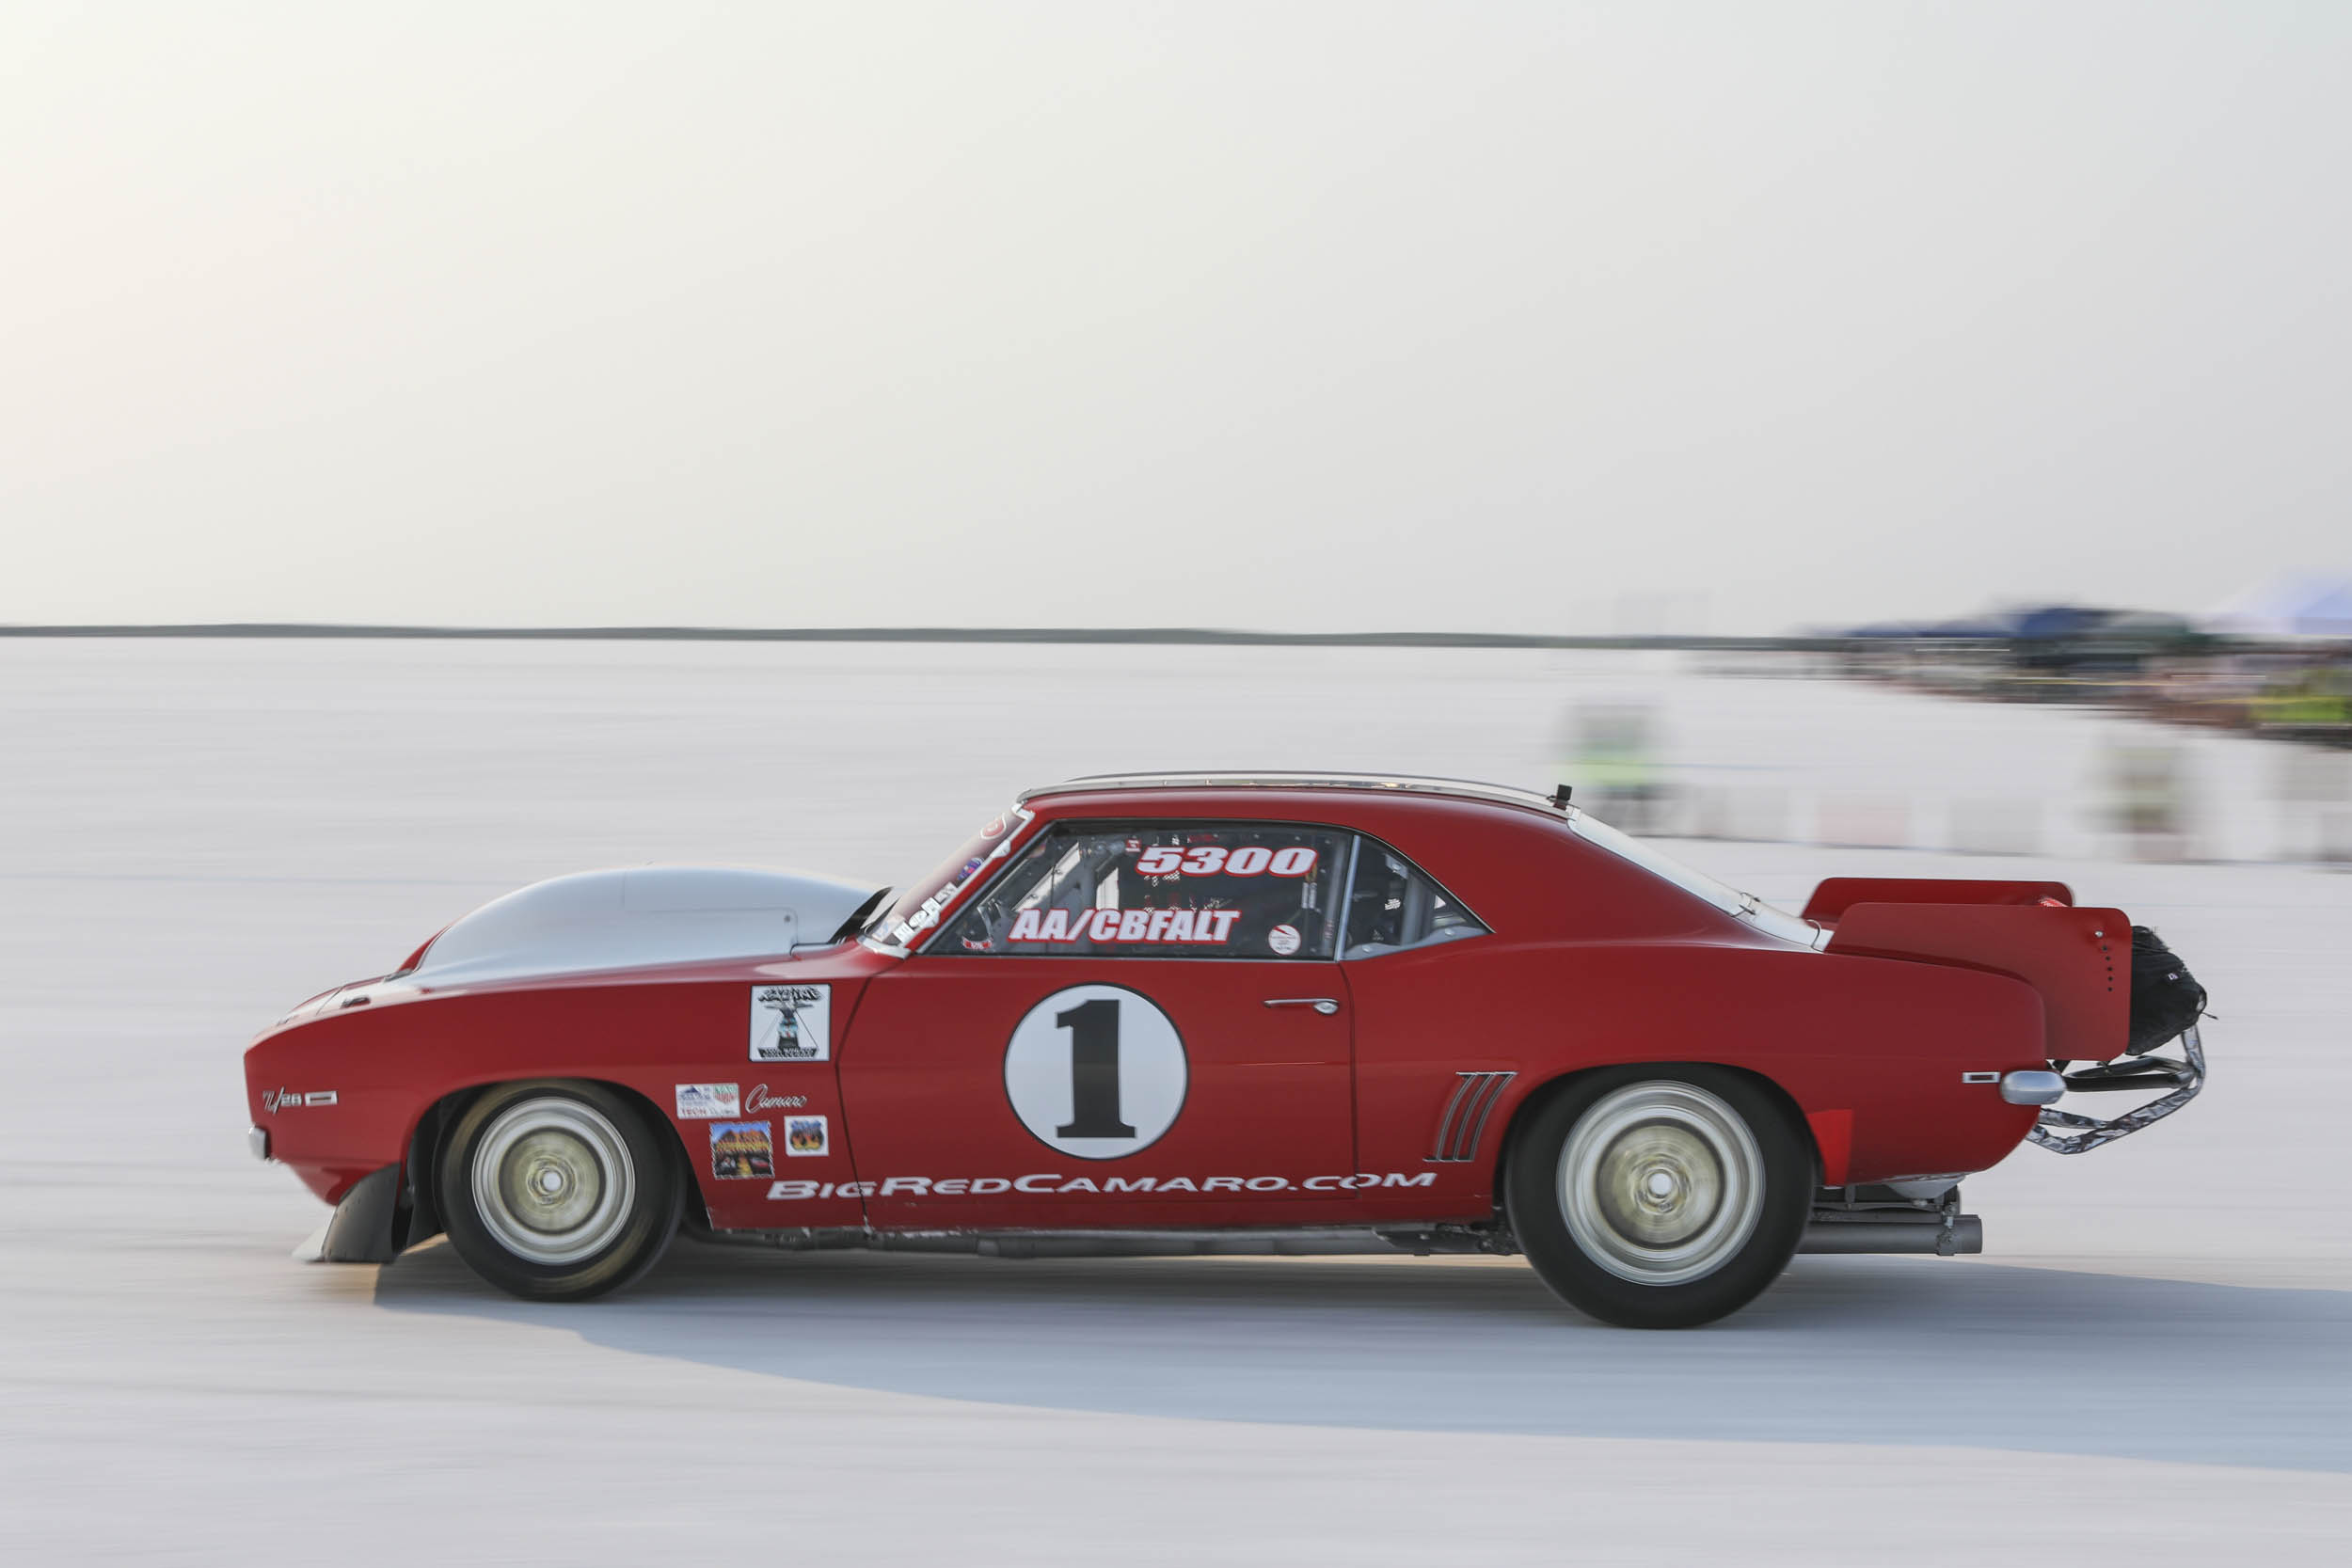 The Big Red Camaro has competed in standing mile events, at Pike's Peak, and how it has the AA Classic Blown Fuel Altered record at nearly 250 mph.